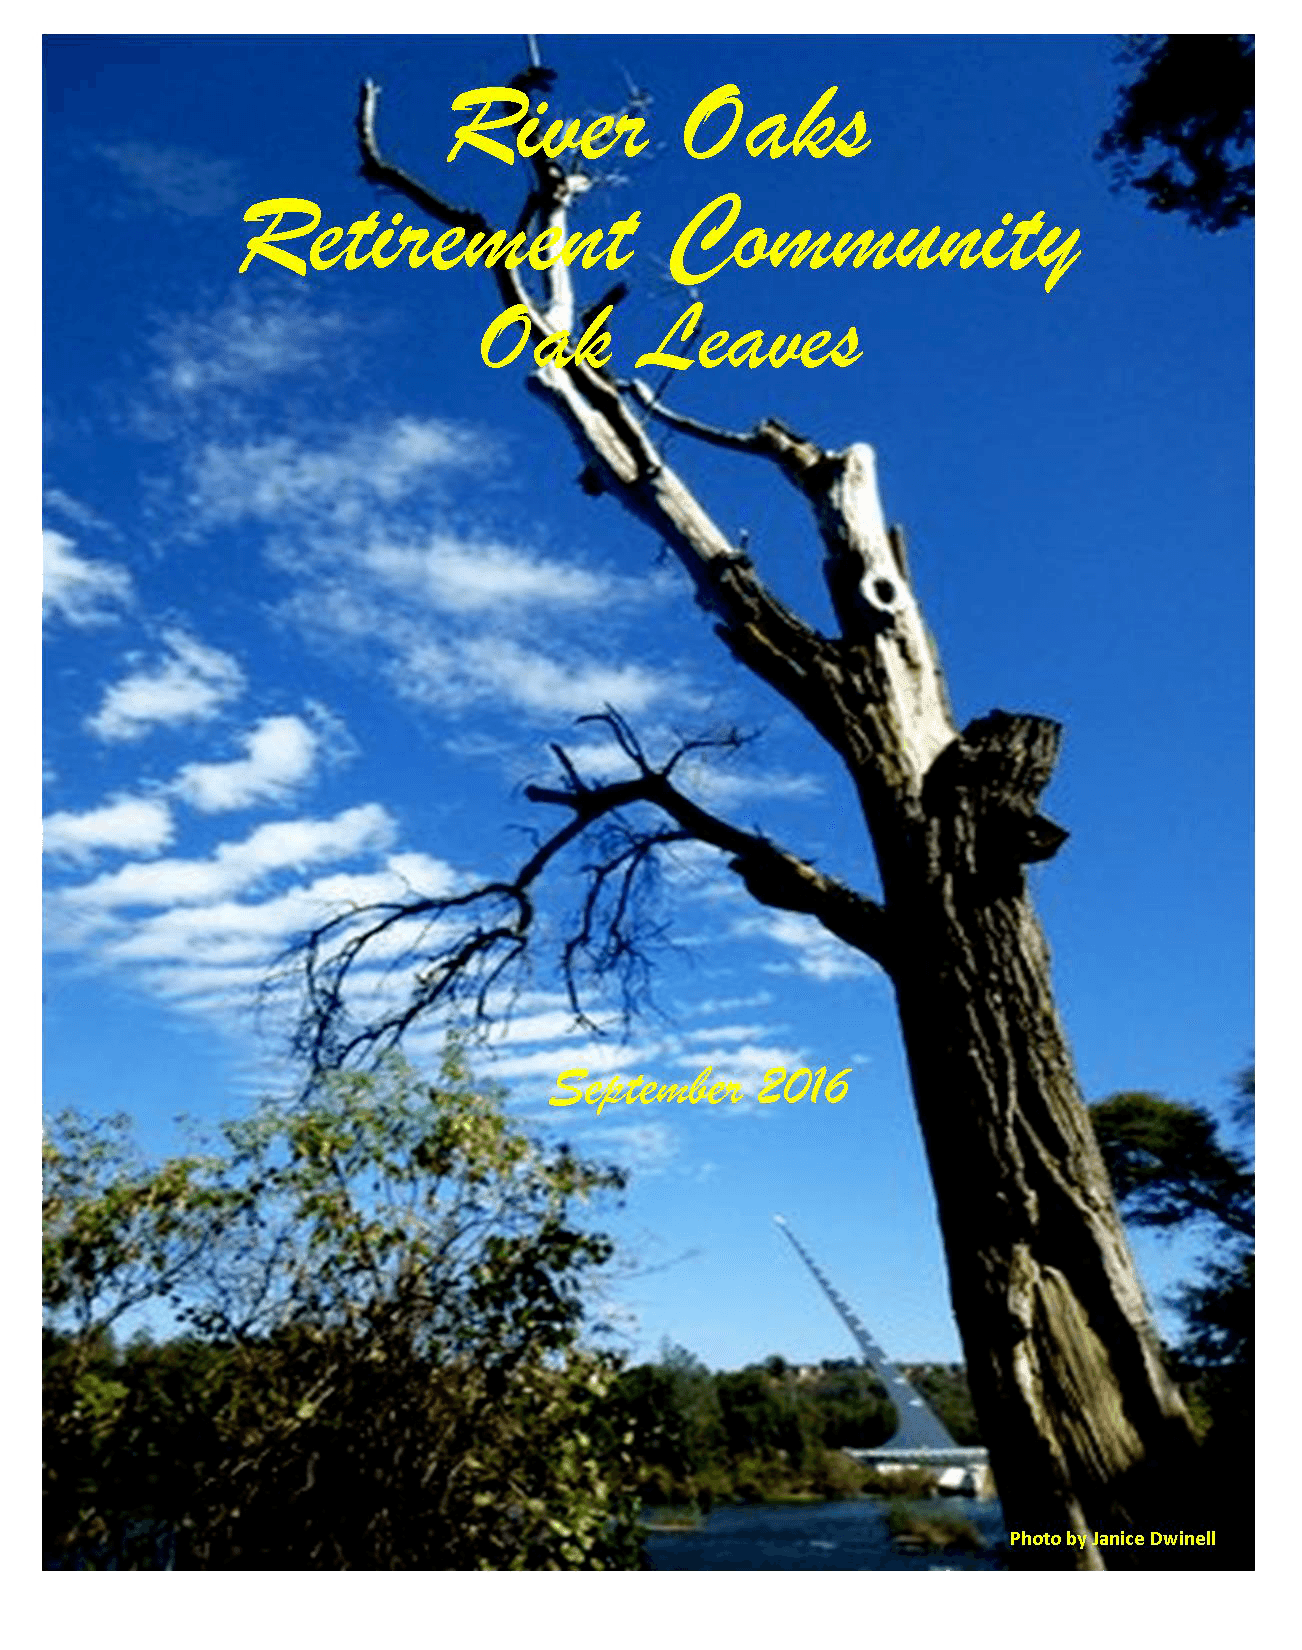 Our community newsletter